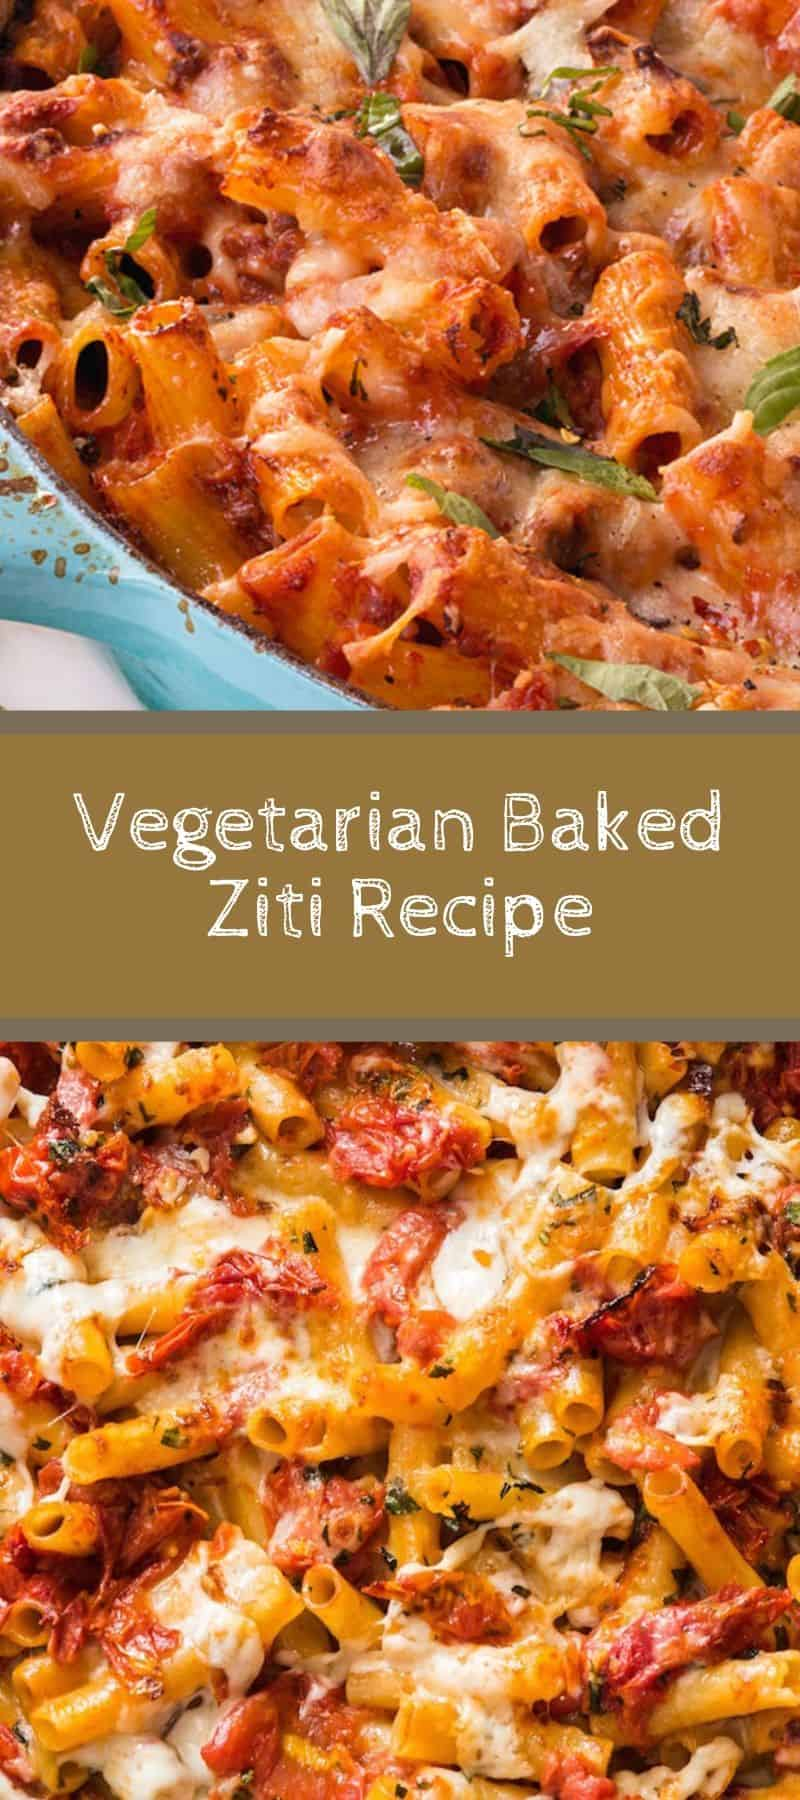 Vegetarian Baked Ziti Recipe 3